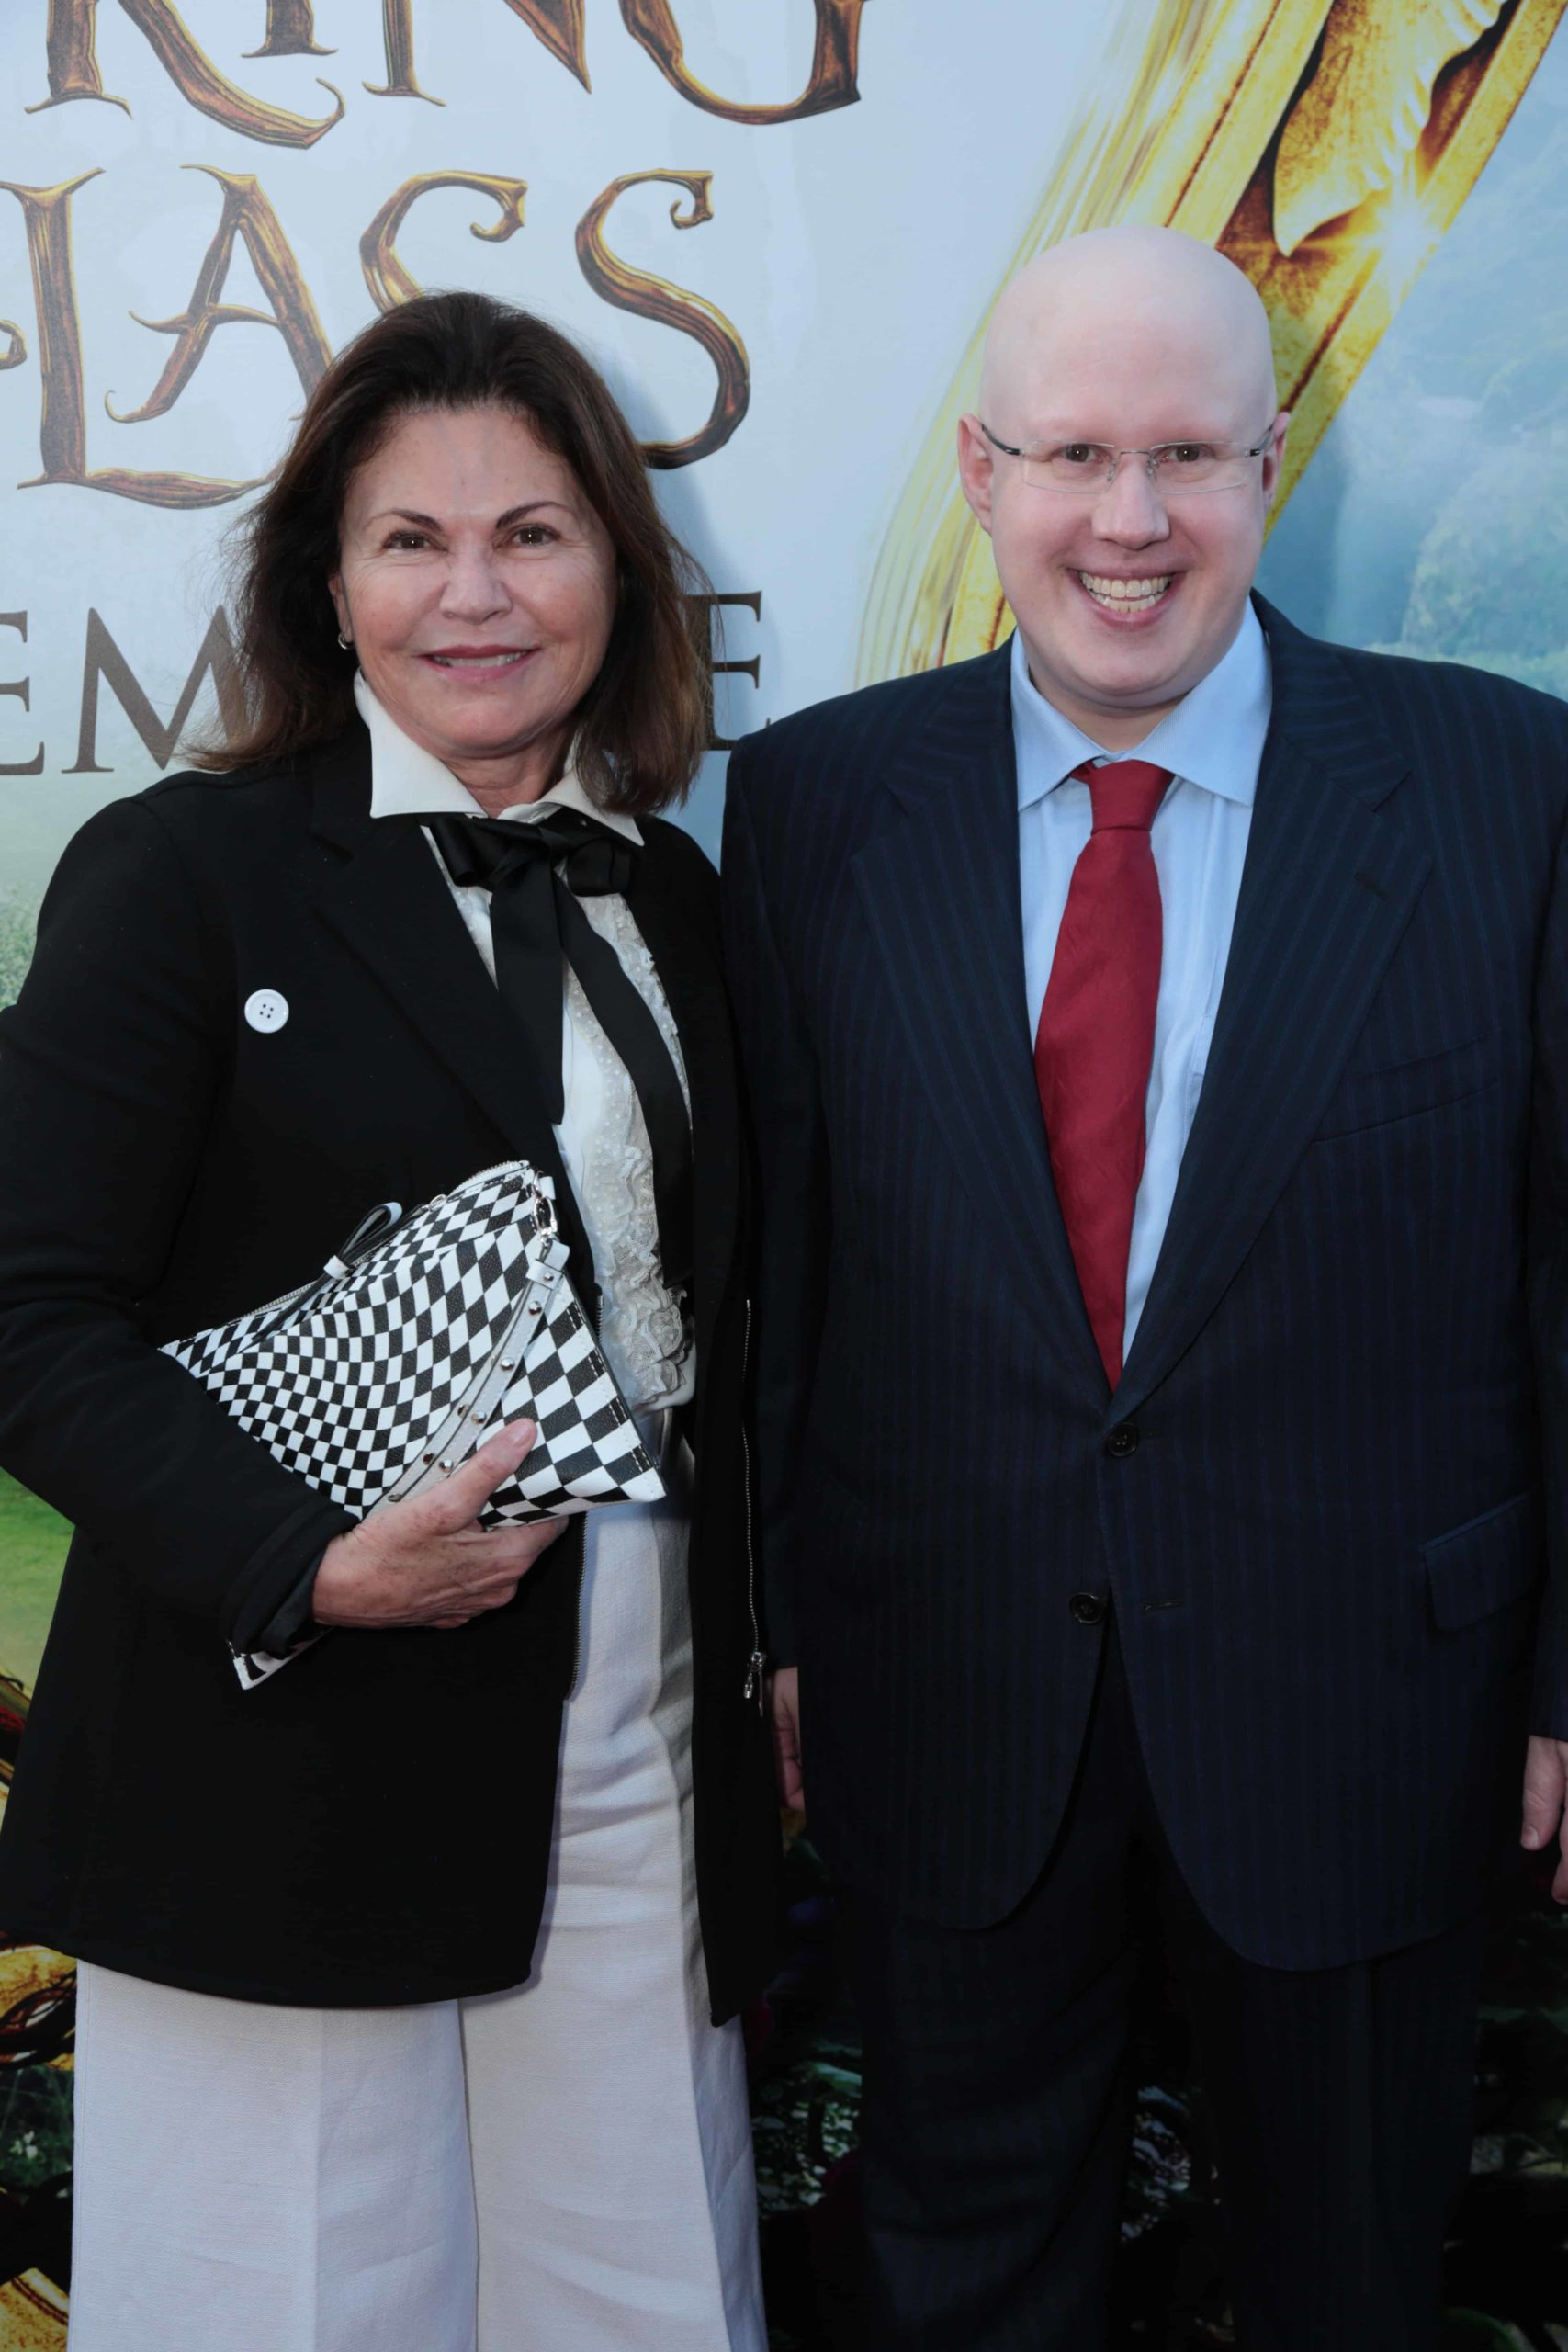 """Colleen Atwood and Matt Lucas pose together at The US Premiere of Disney's """"Alice Through the Looking Glass"""" at the El Capitan Theater in Los Angeles, CA on Monday, May 23, 2016. (Photo: Alex J. Berliner/ABImages)"""